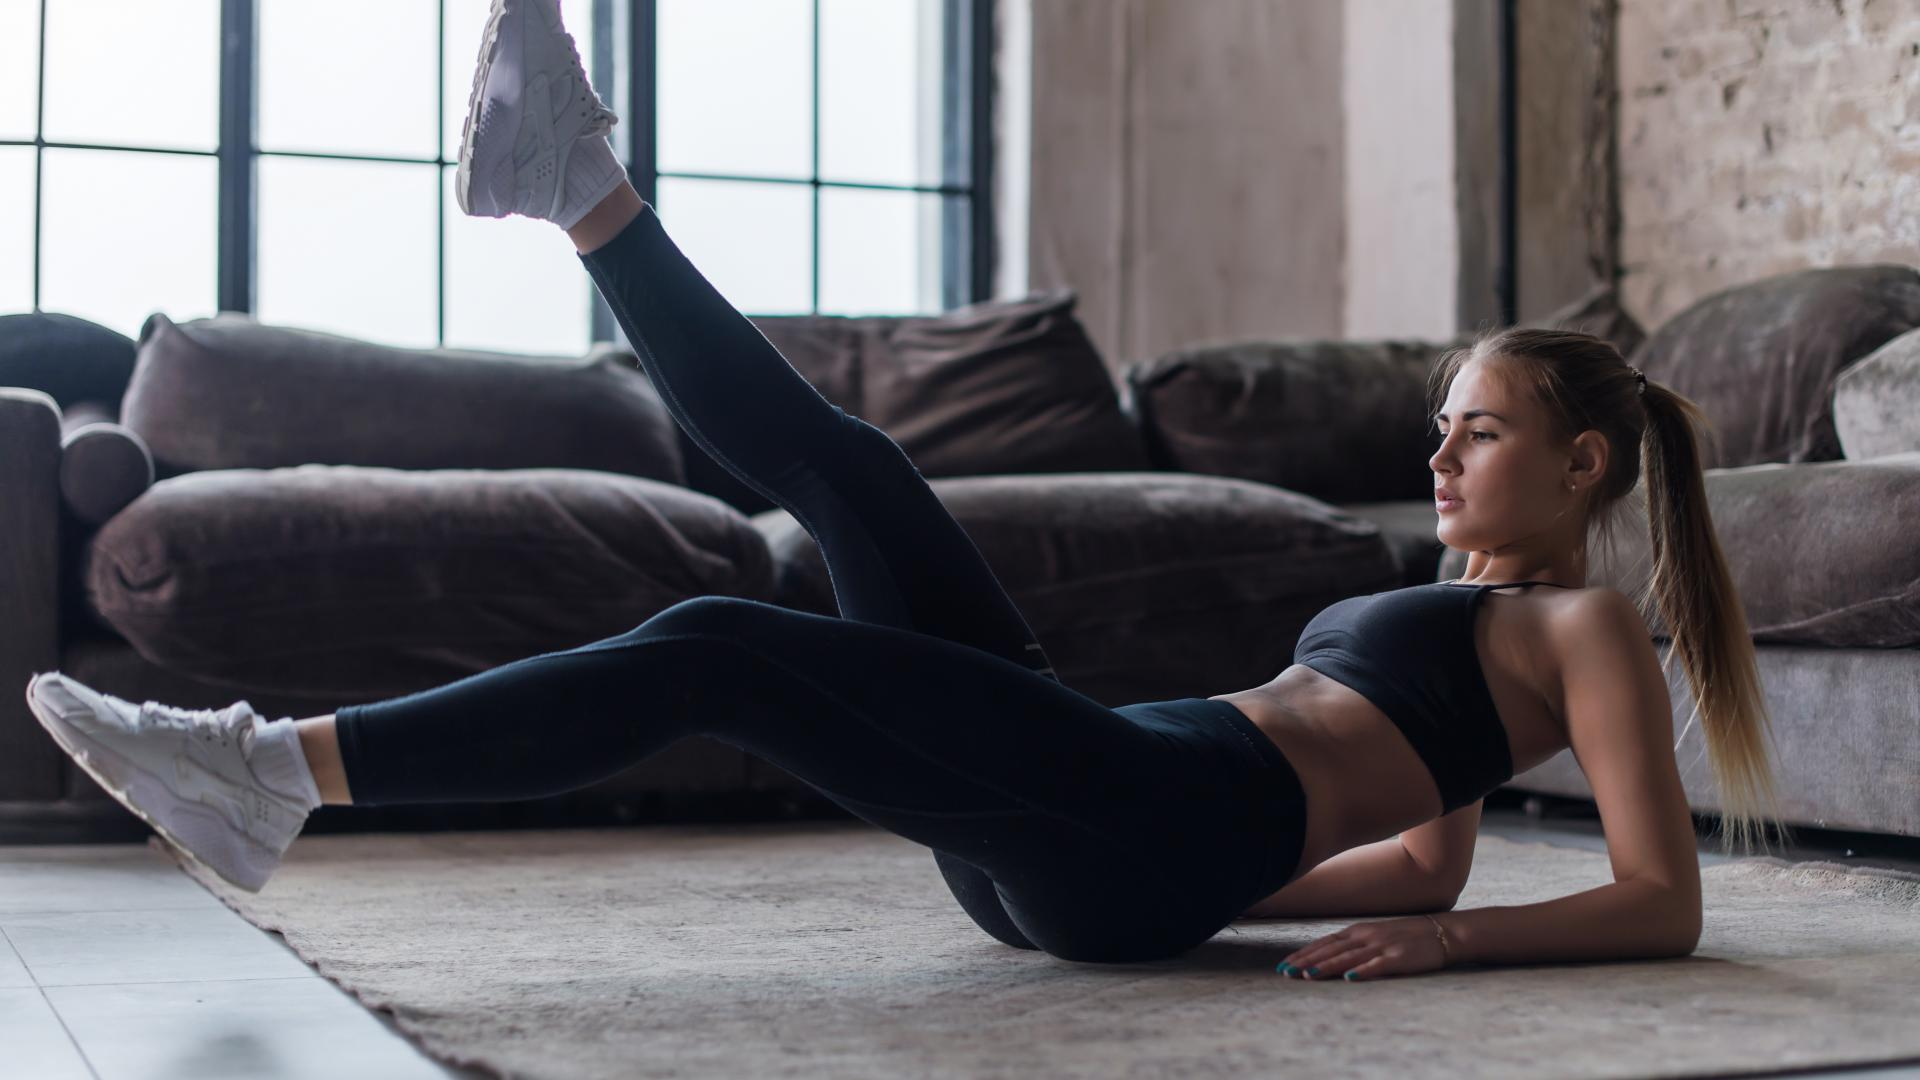 Young sporty female doing abs workout in living room performing alternate leg raising and crunch exercise.